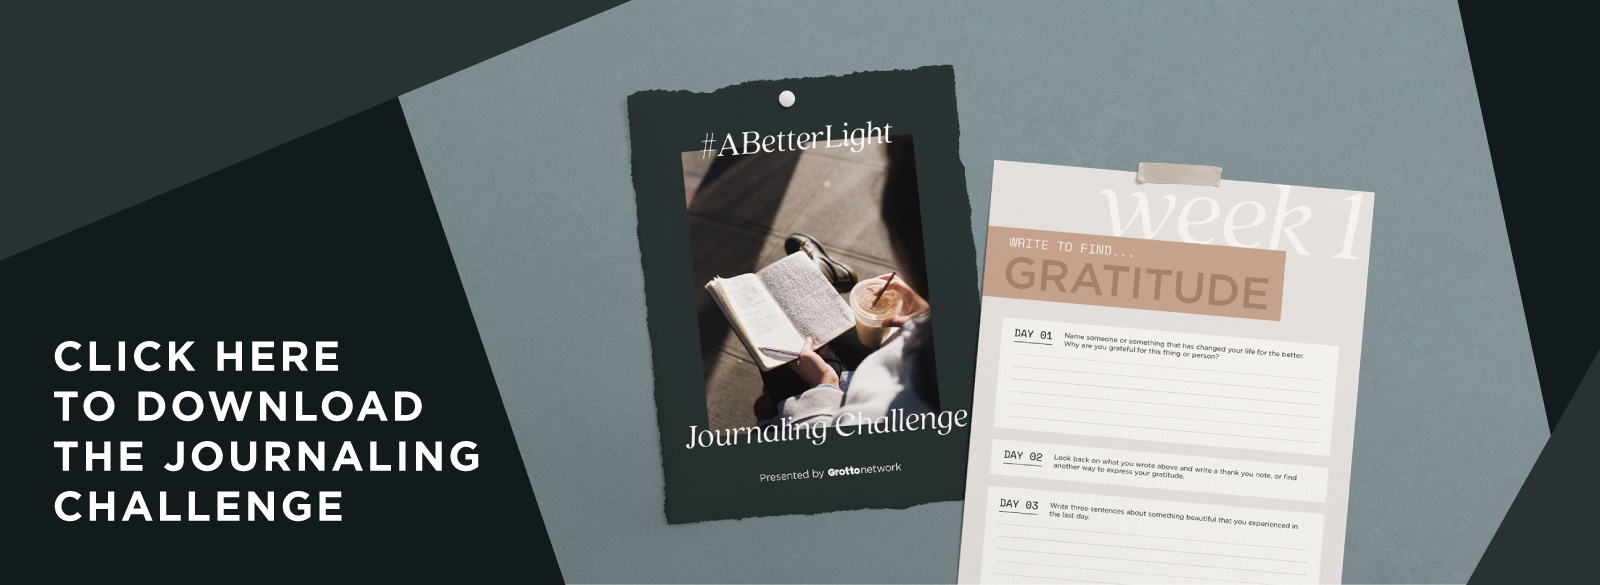 Click here to download a free challenge with journaling prompts.